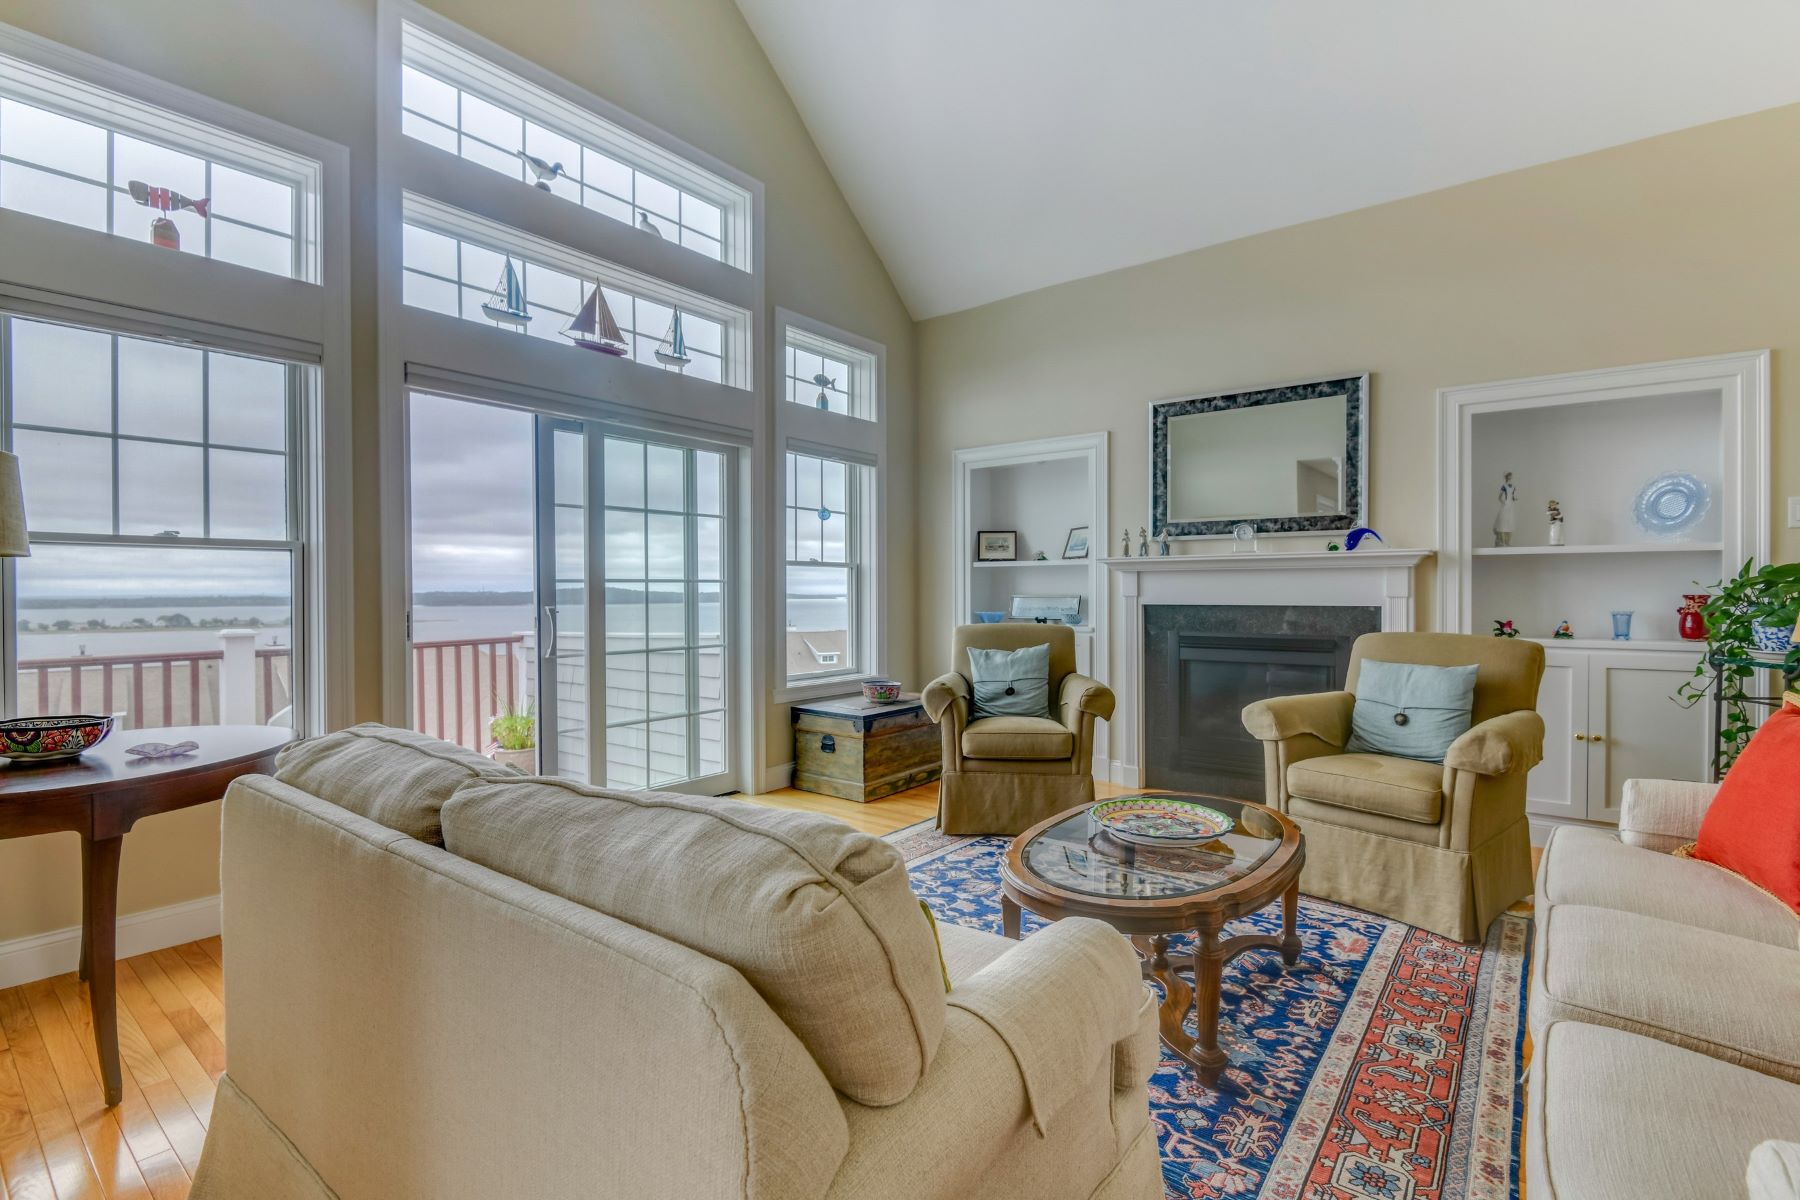 Condominiums for Sale at Great Location with Water Views 57 Topsail Drive Tiverton, Rhode Island 02878 United States